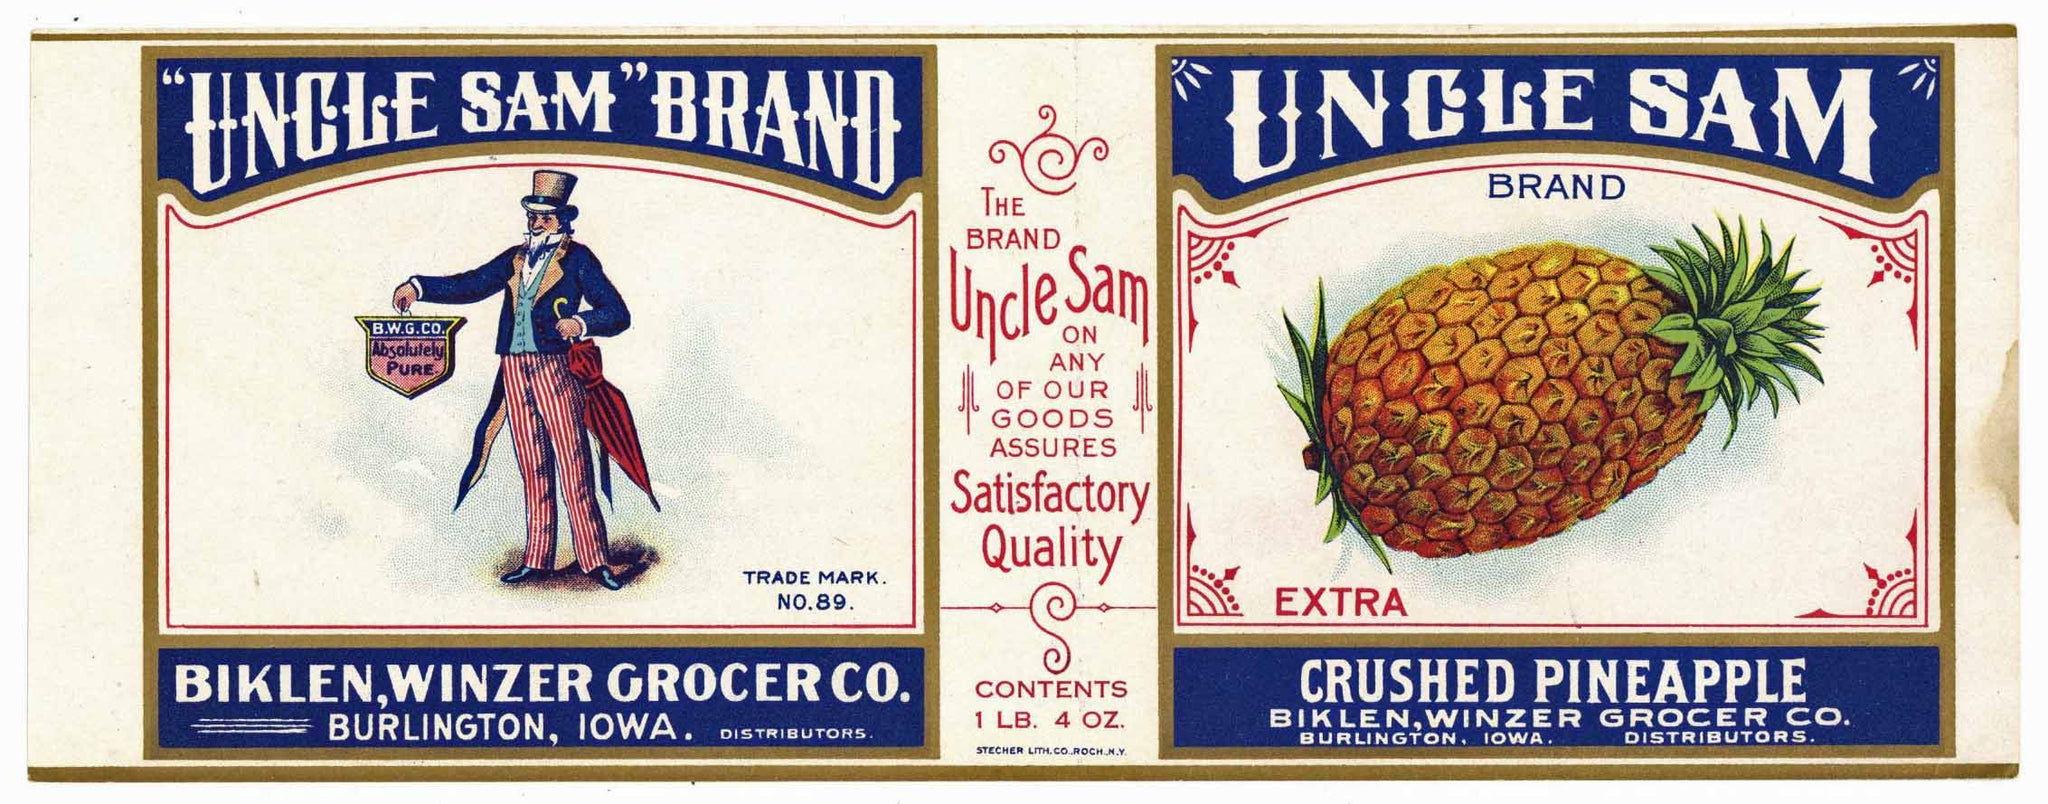 Uncle Sam Brand Vintage Burlington Iowa Pineapple Can Label